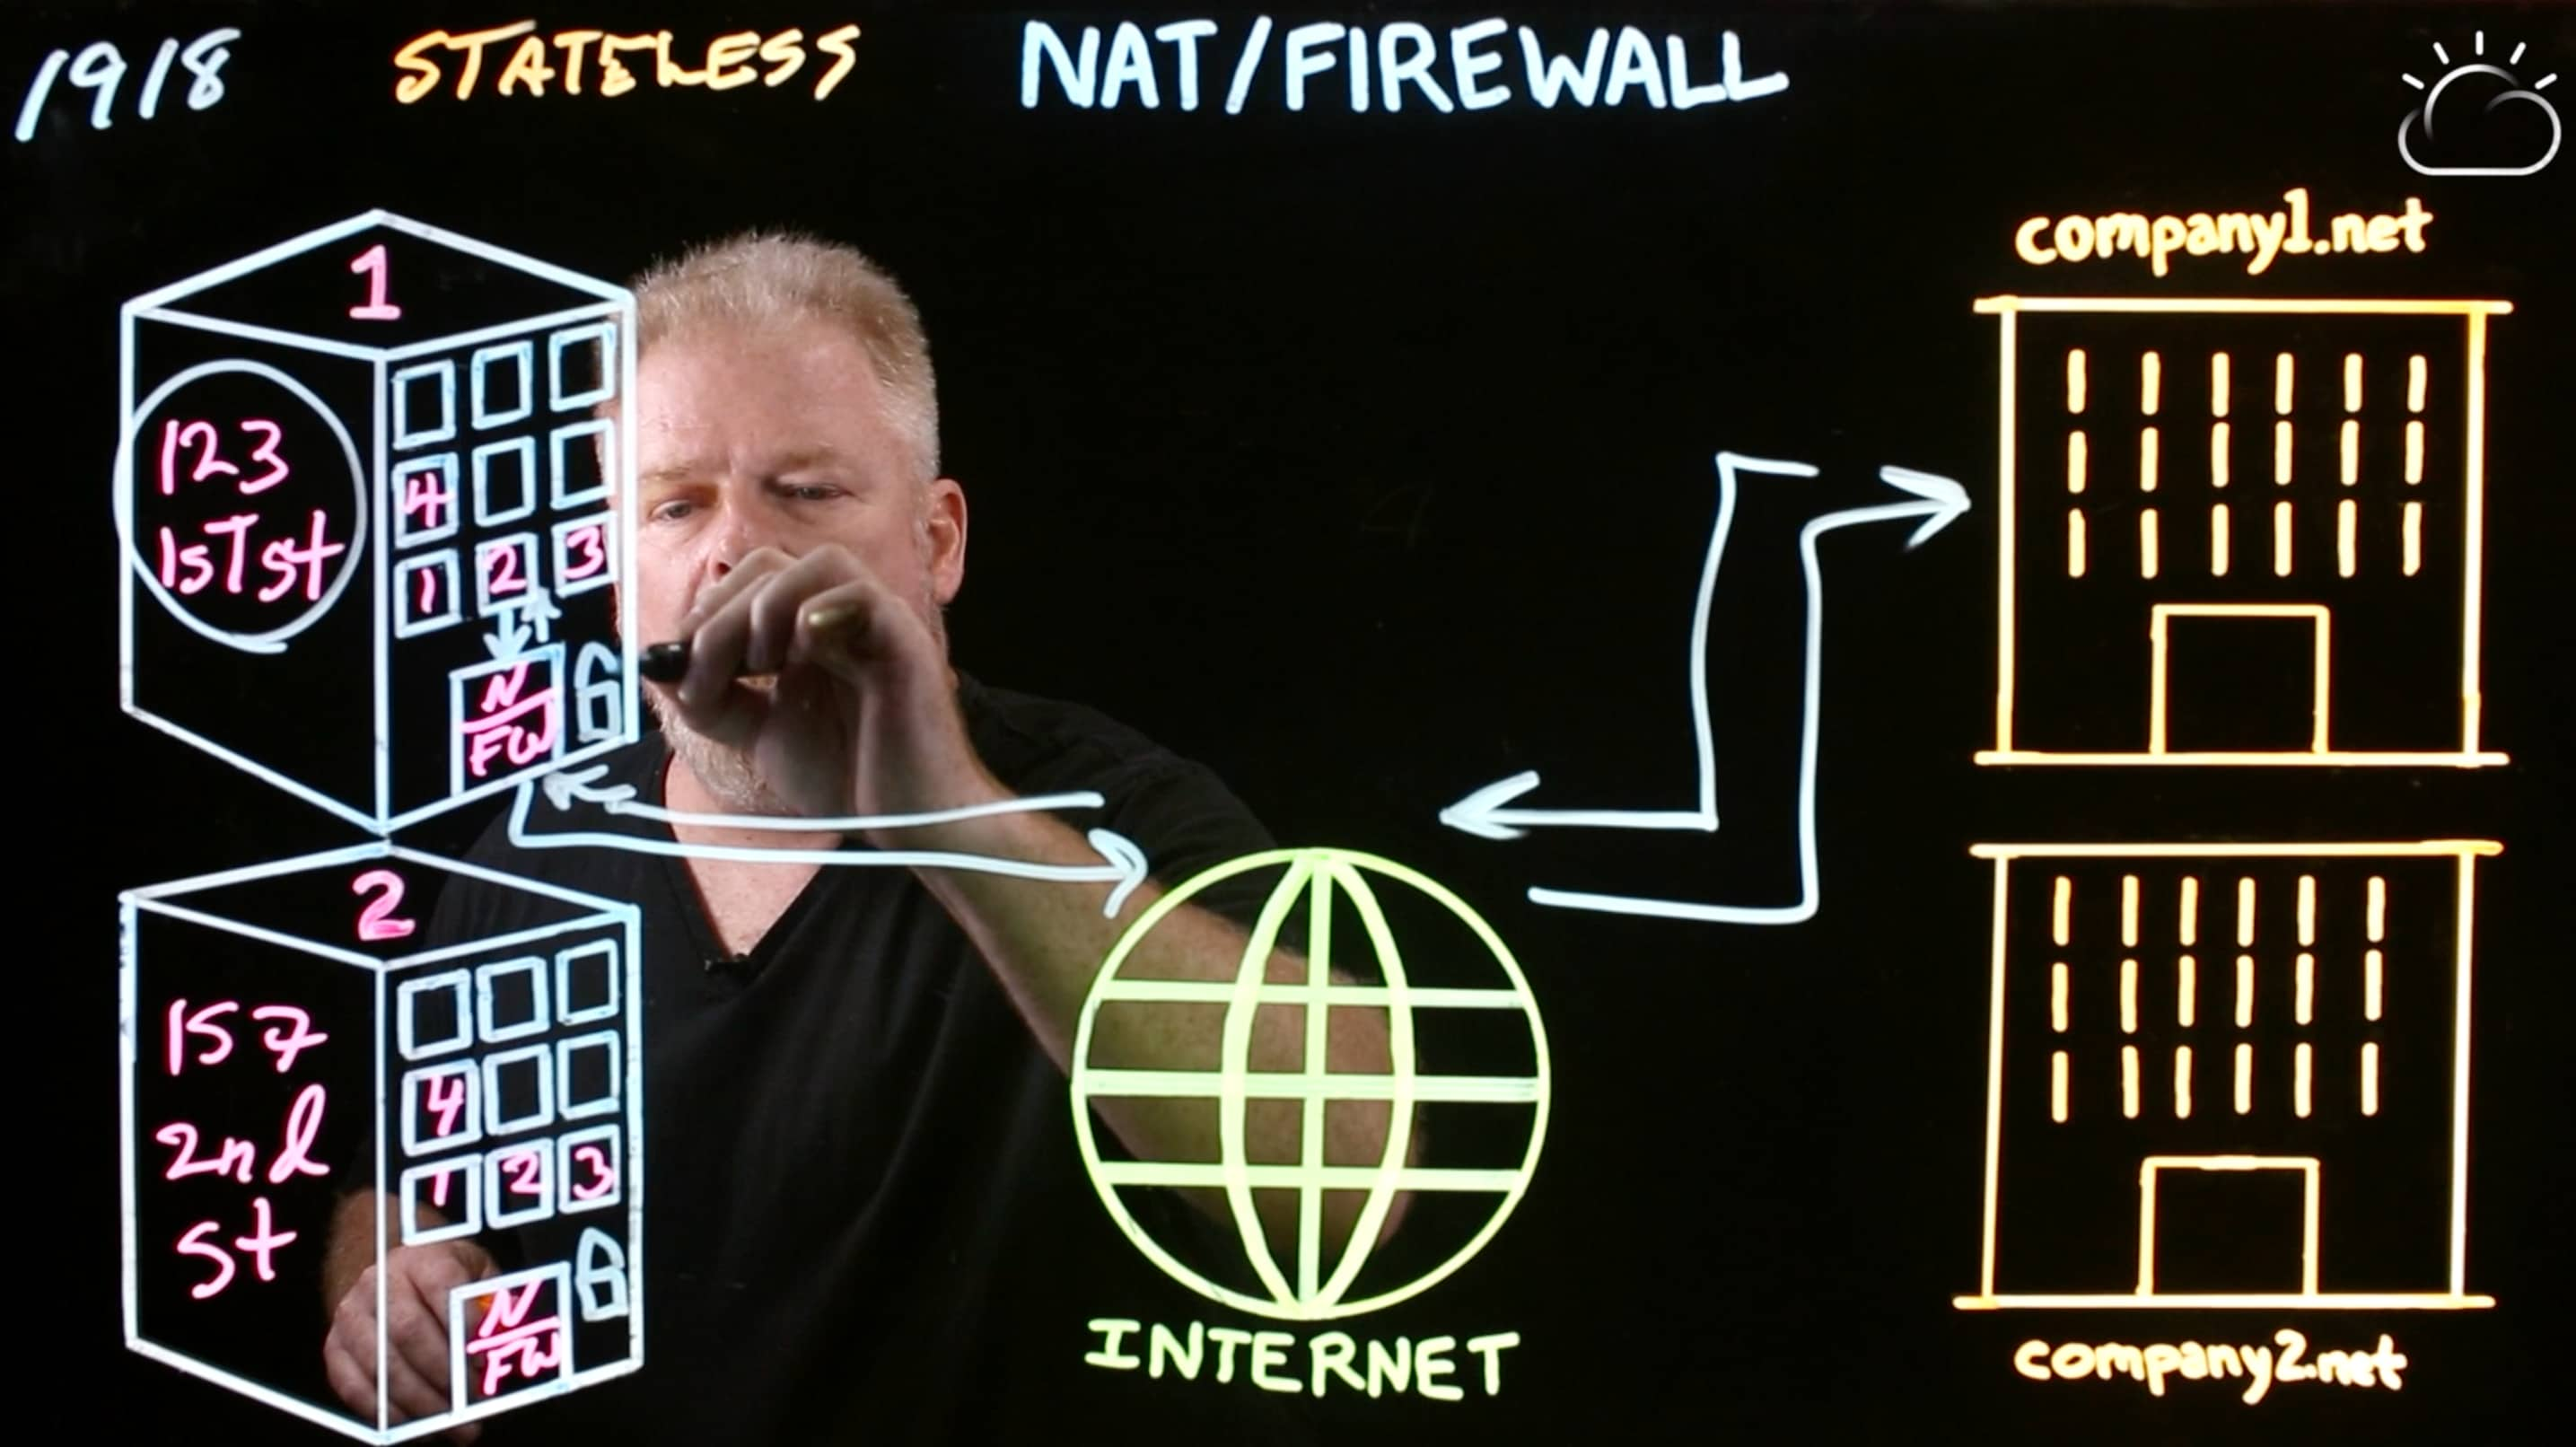 A stateless firewall is like a lock on a door.